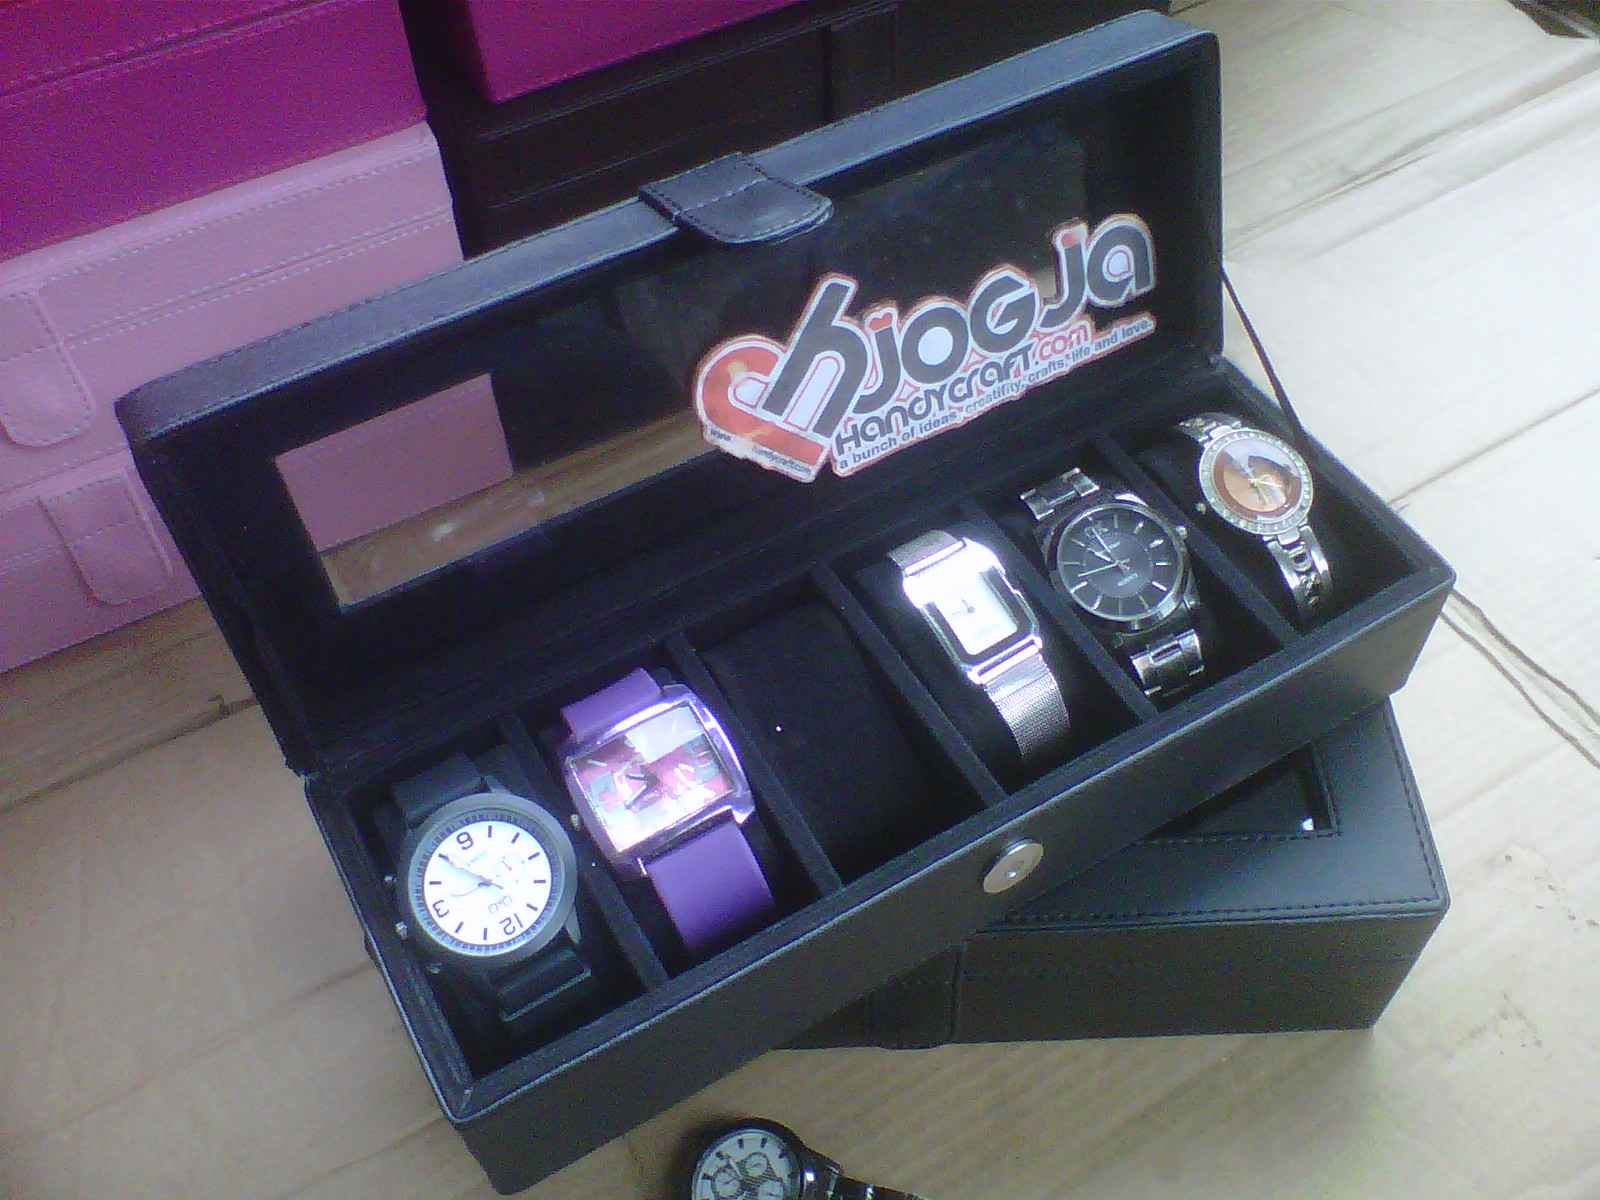 Full Black Watch Box Organizer For 6 Watches